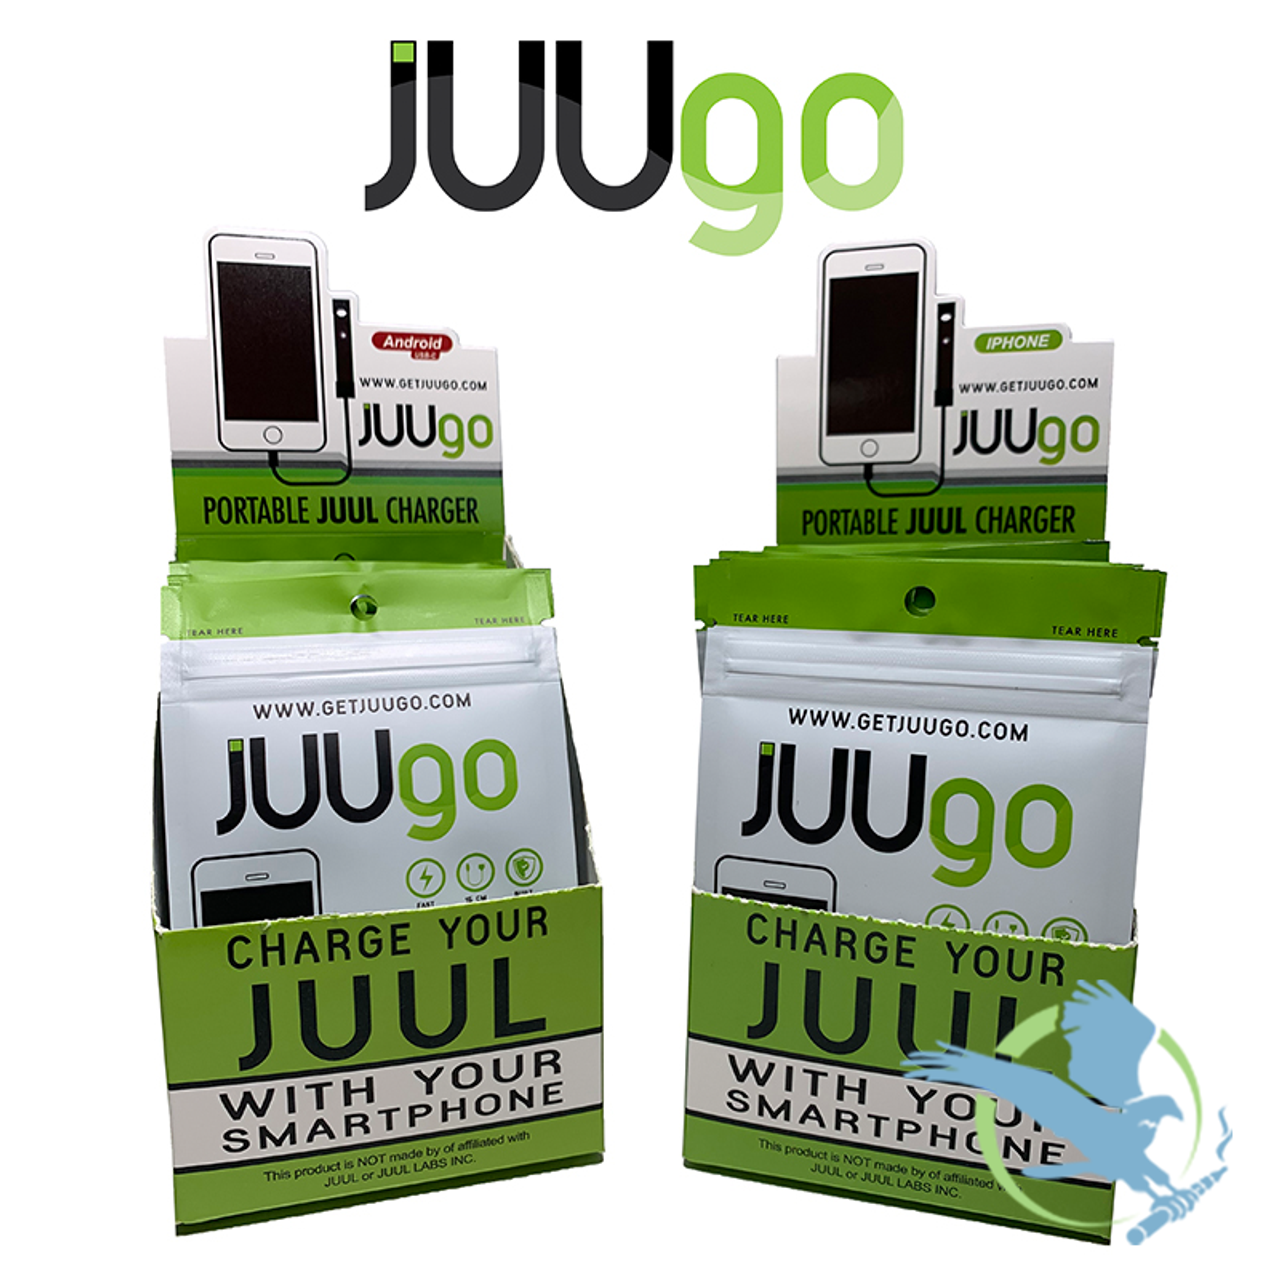 JUUGO 24 Pack Display For IPhone And Android | Hardware